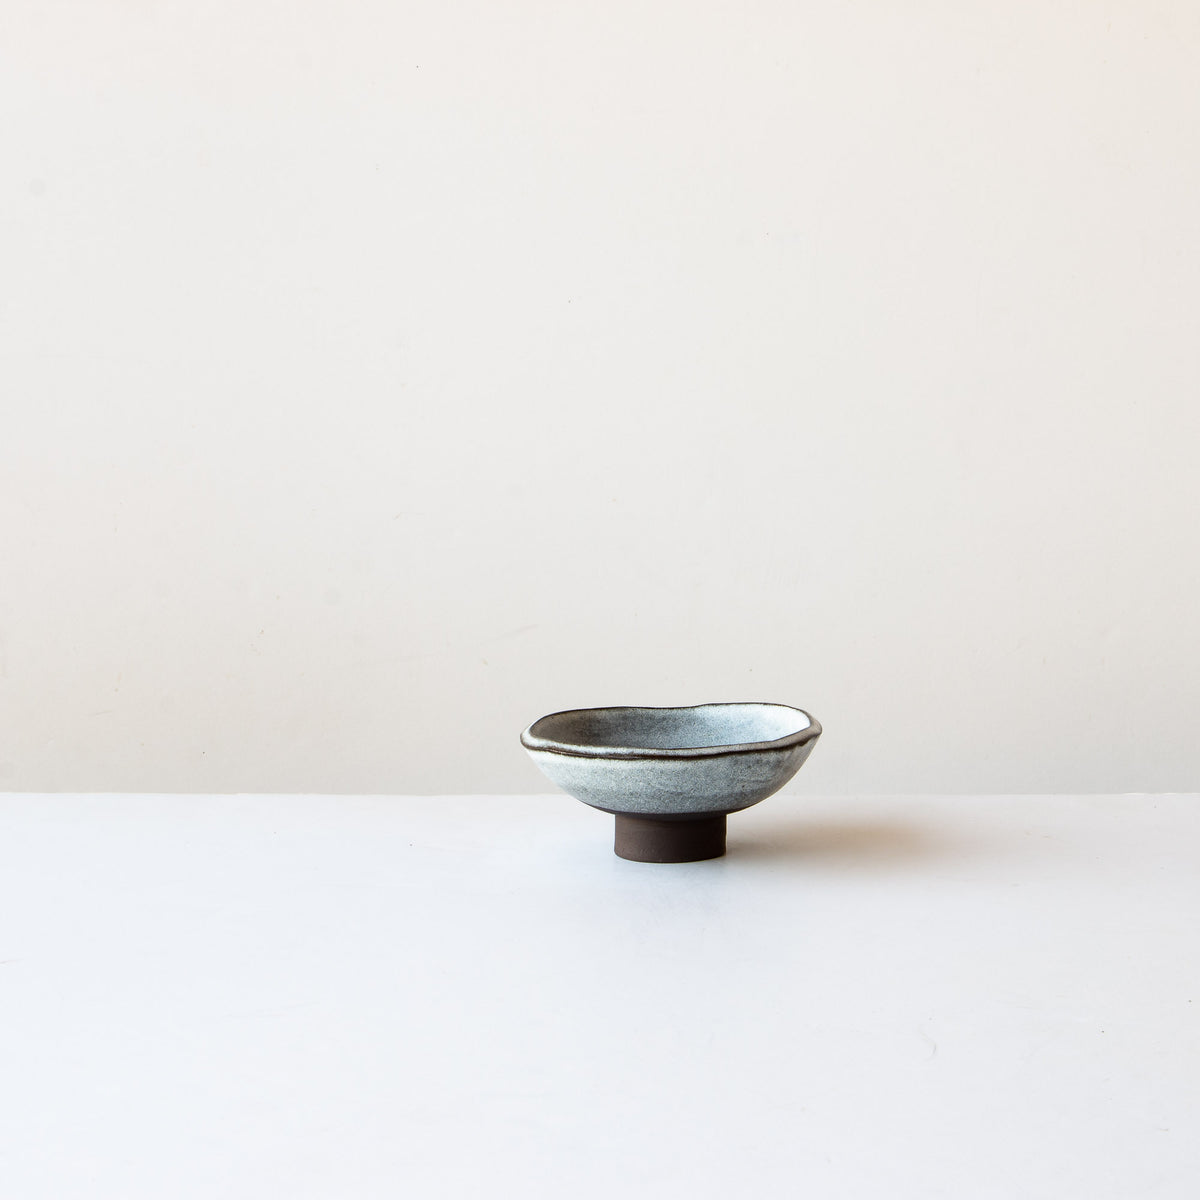 Handmade Stoneware Small Miso Bowl - Grey & White - Sold by Chic & Basta